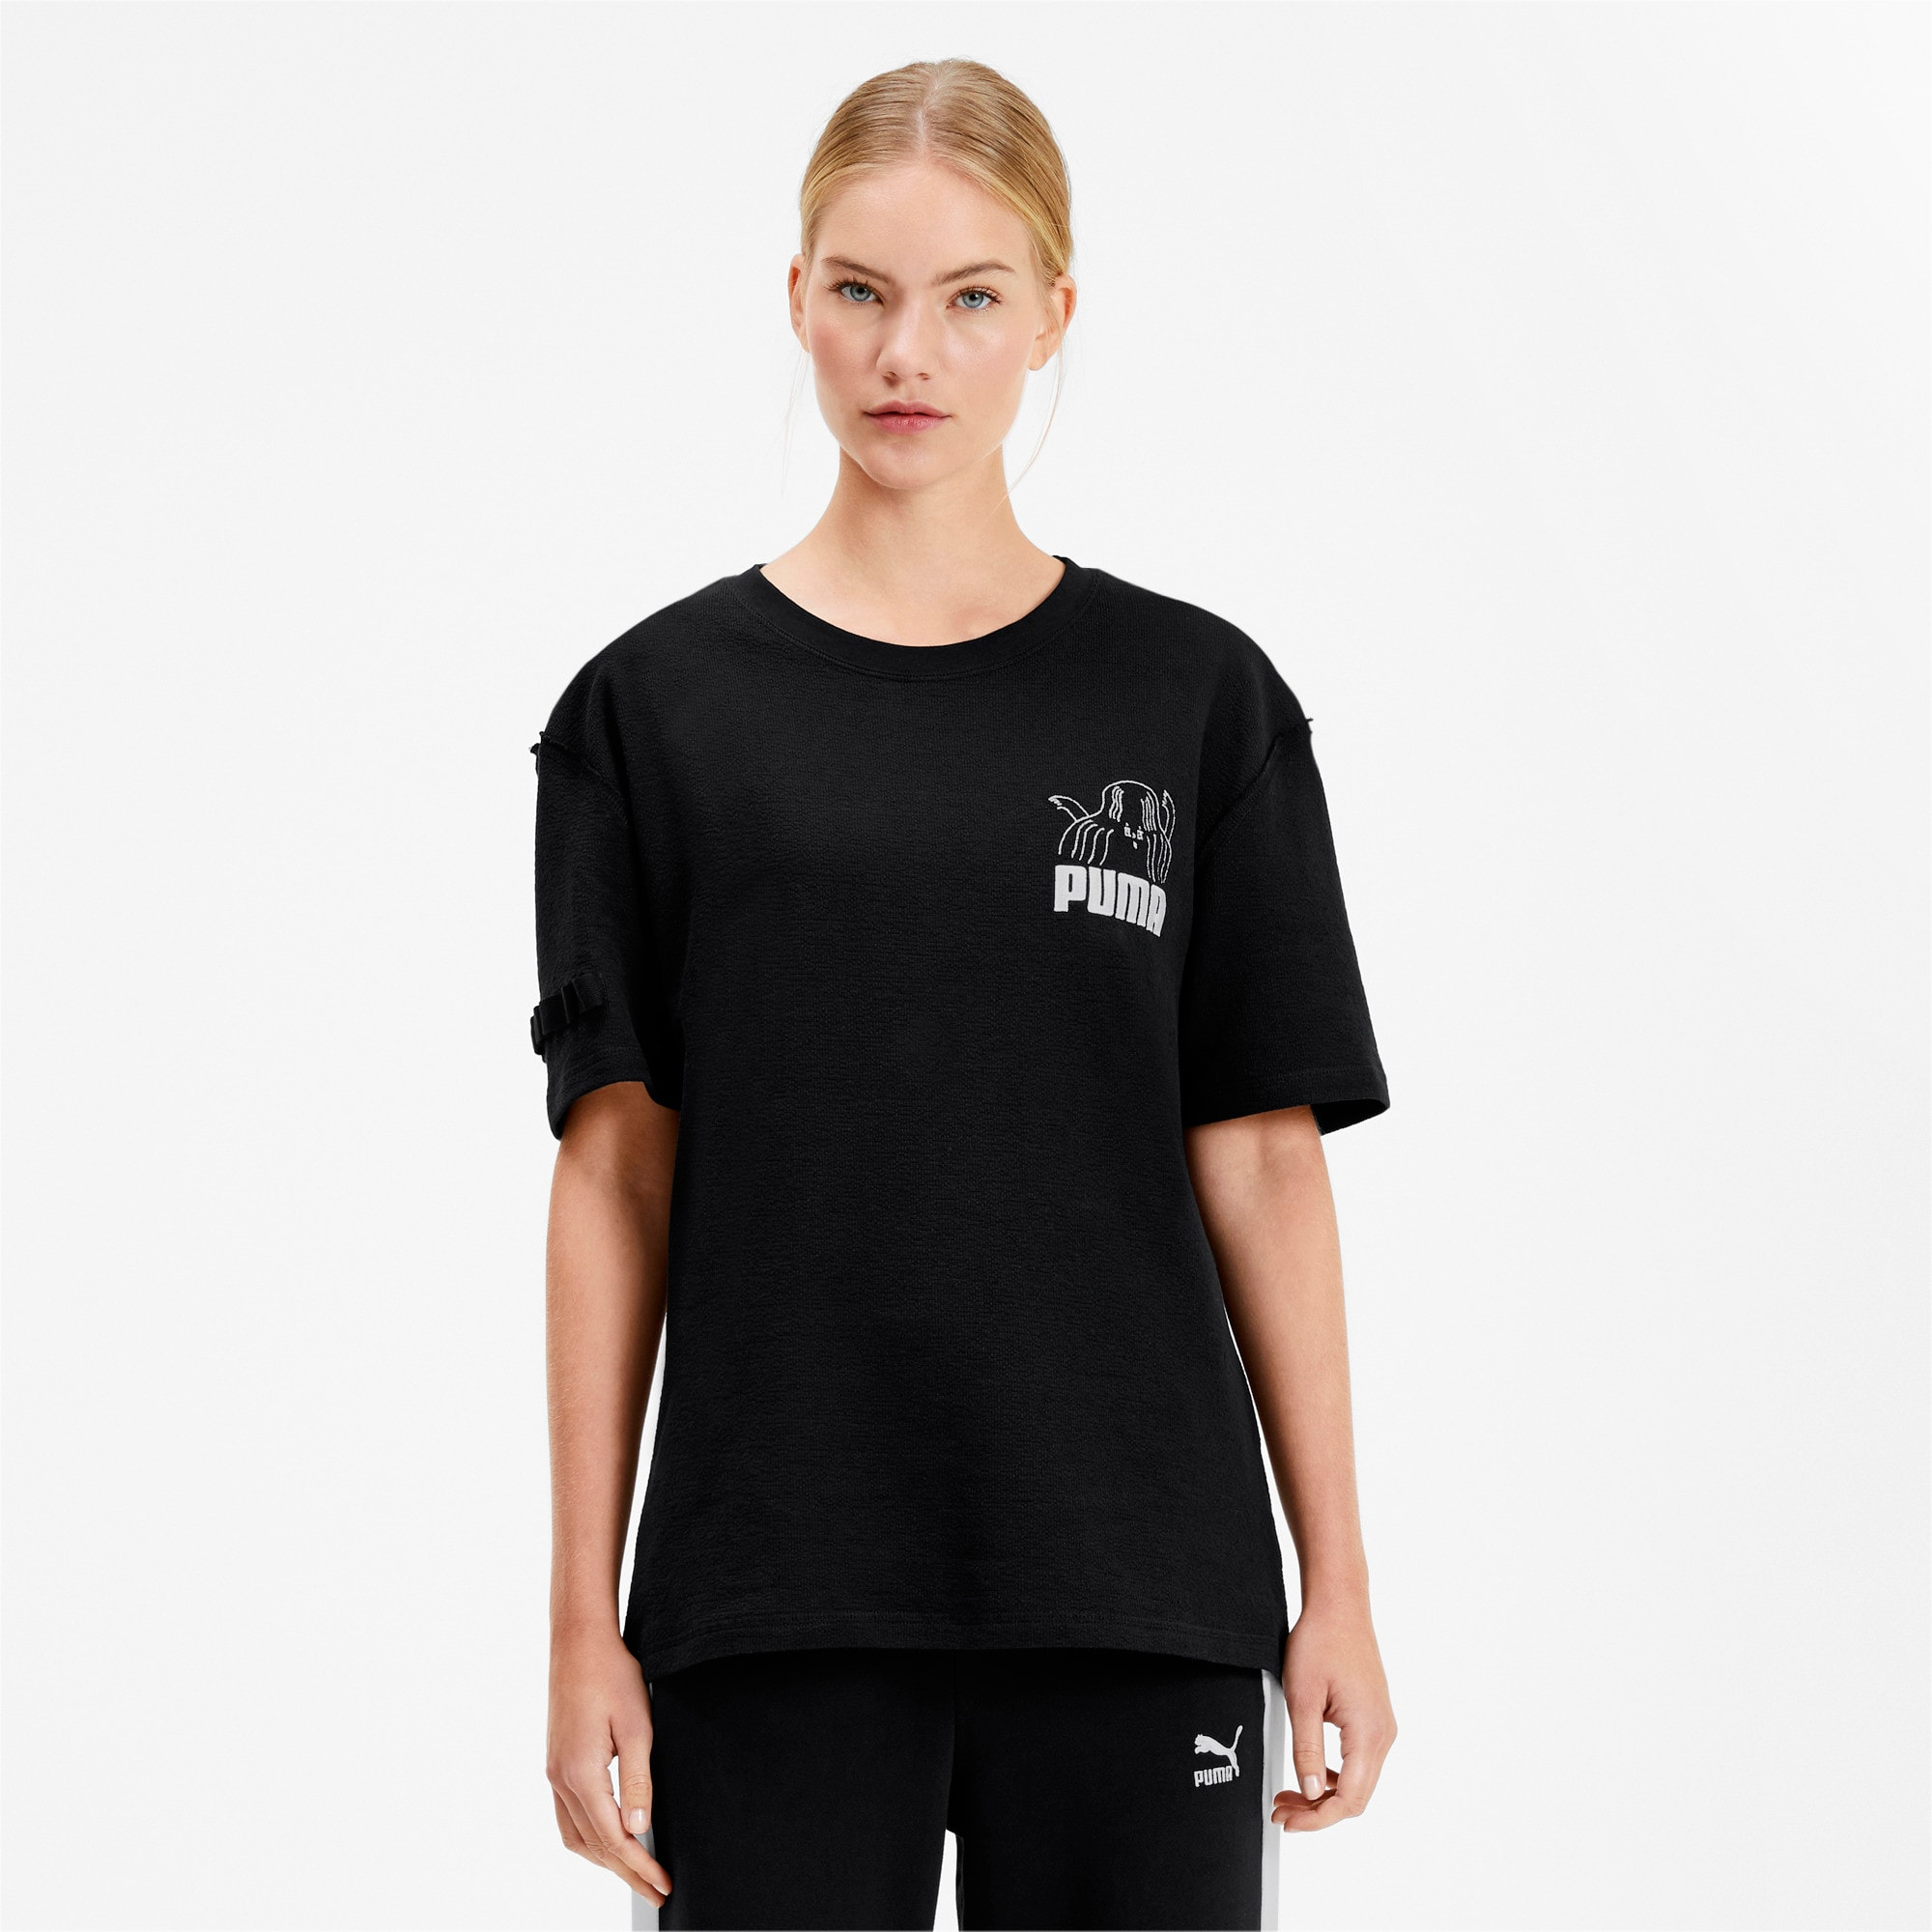 Camiseta PUMA x TYAKASHA , Cotton Black, grande